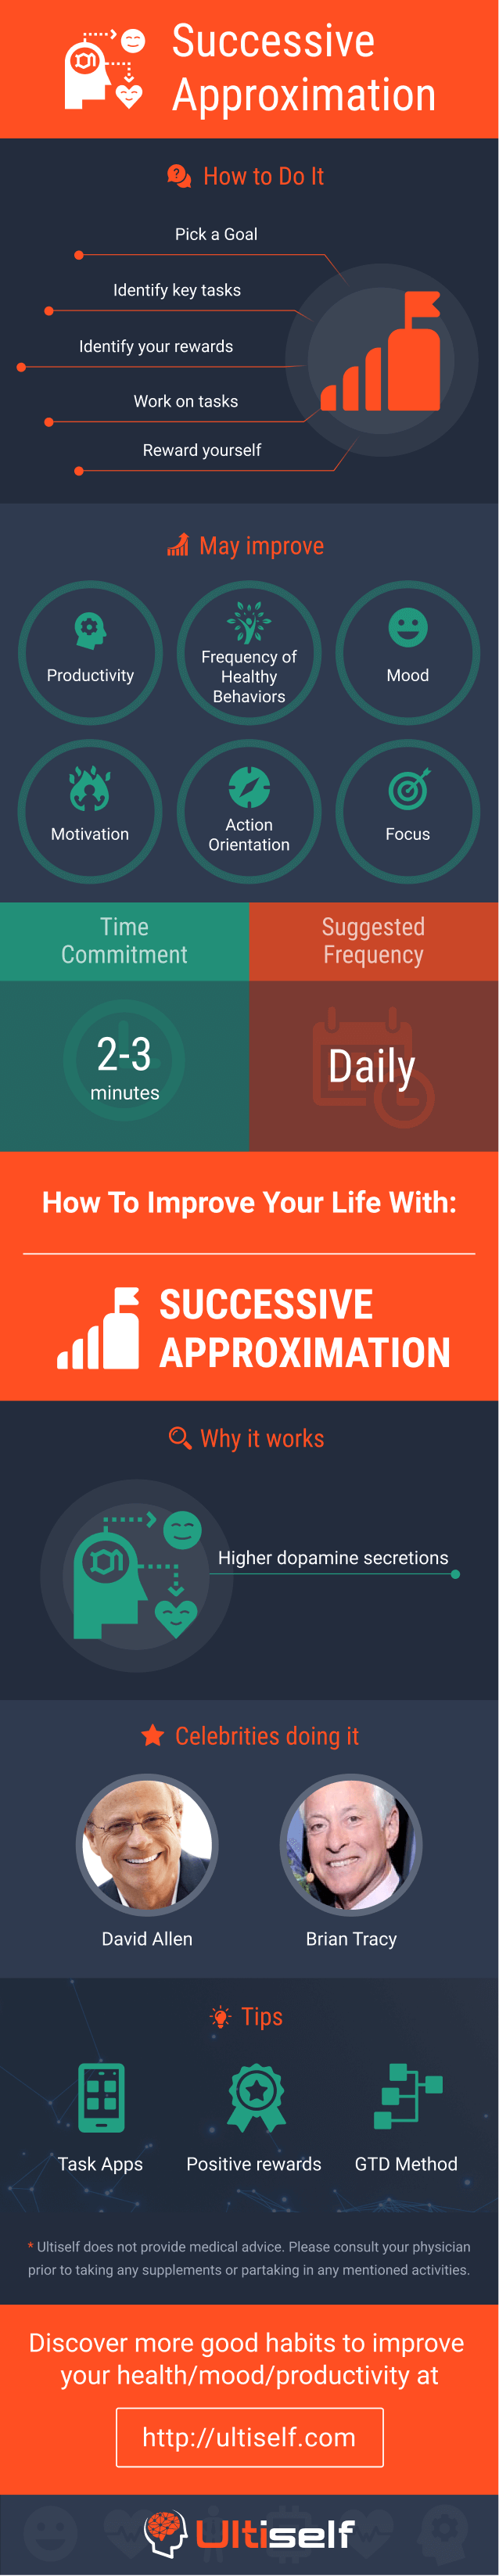 Successive Approximation infographic